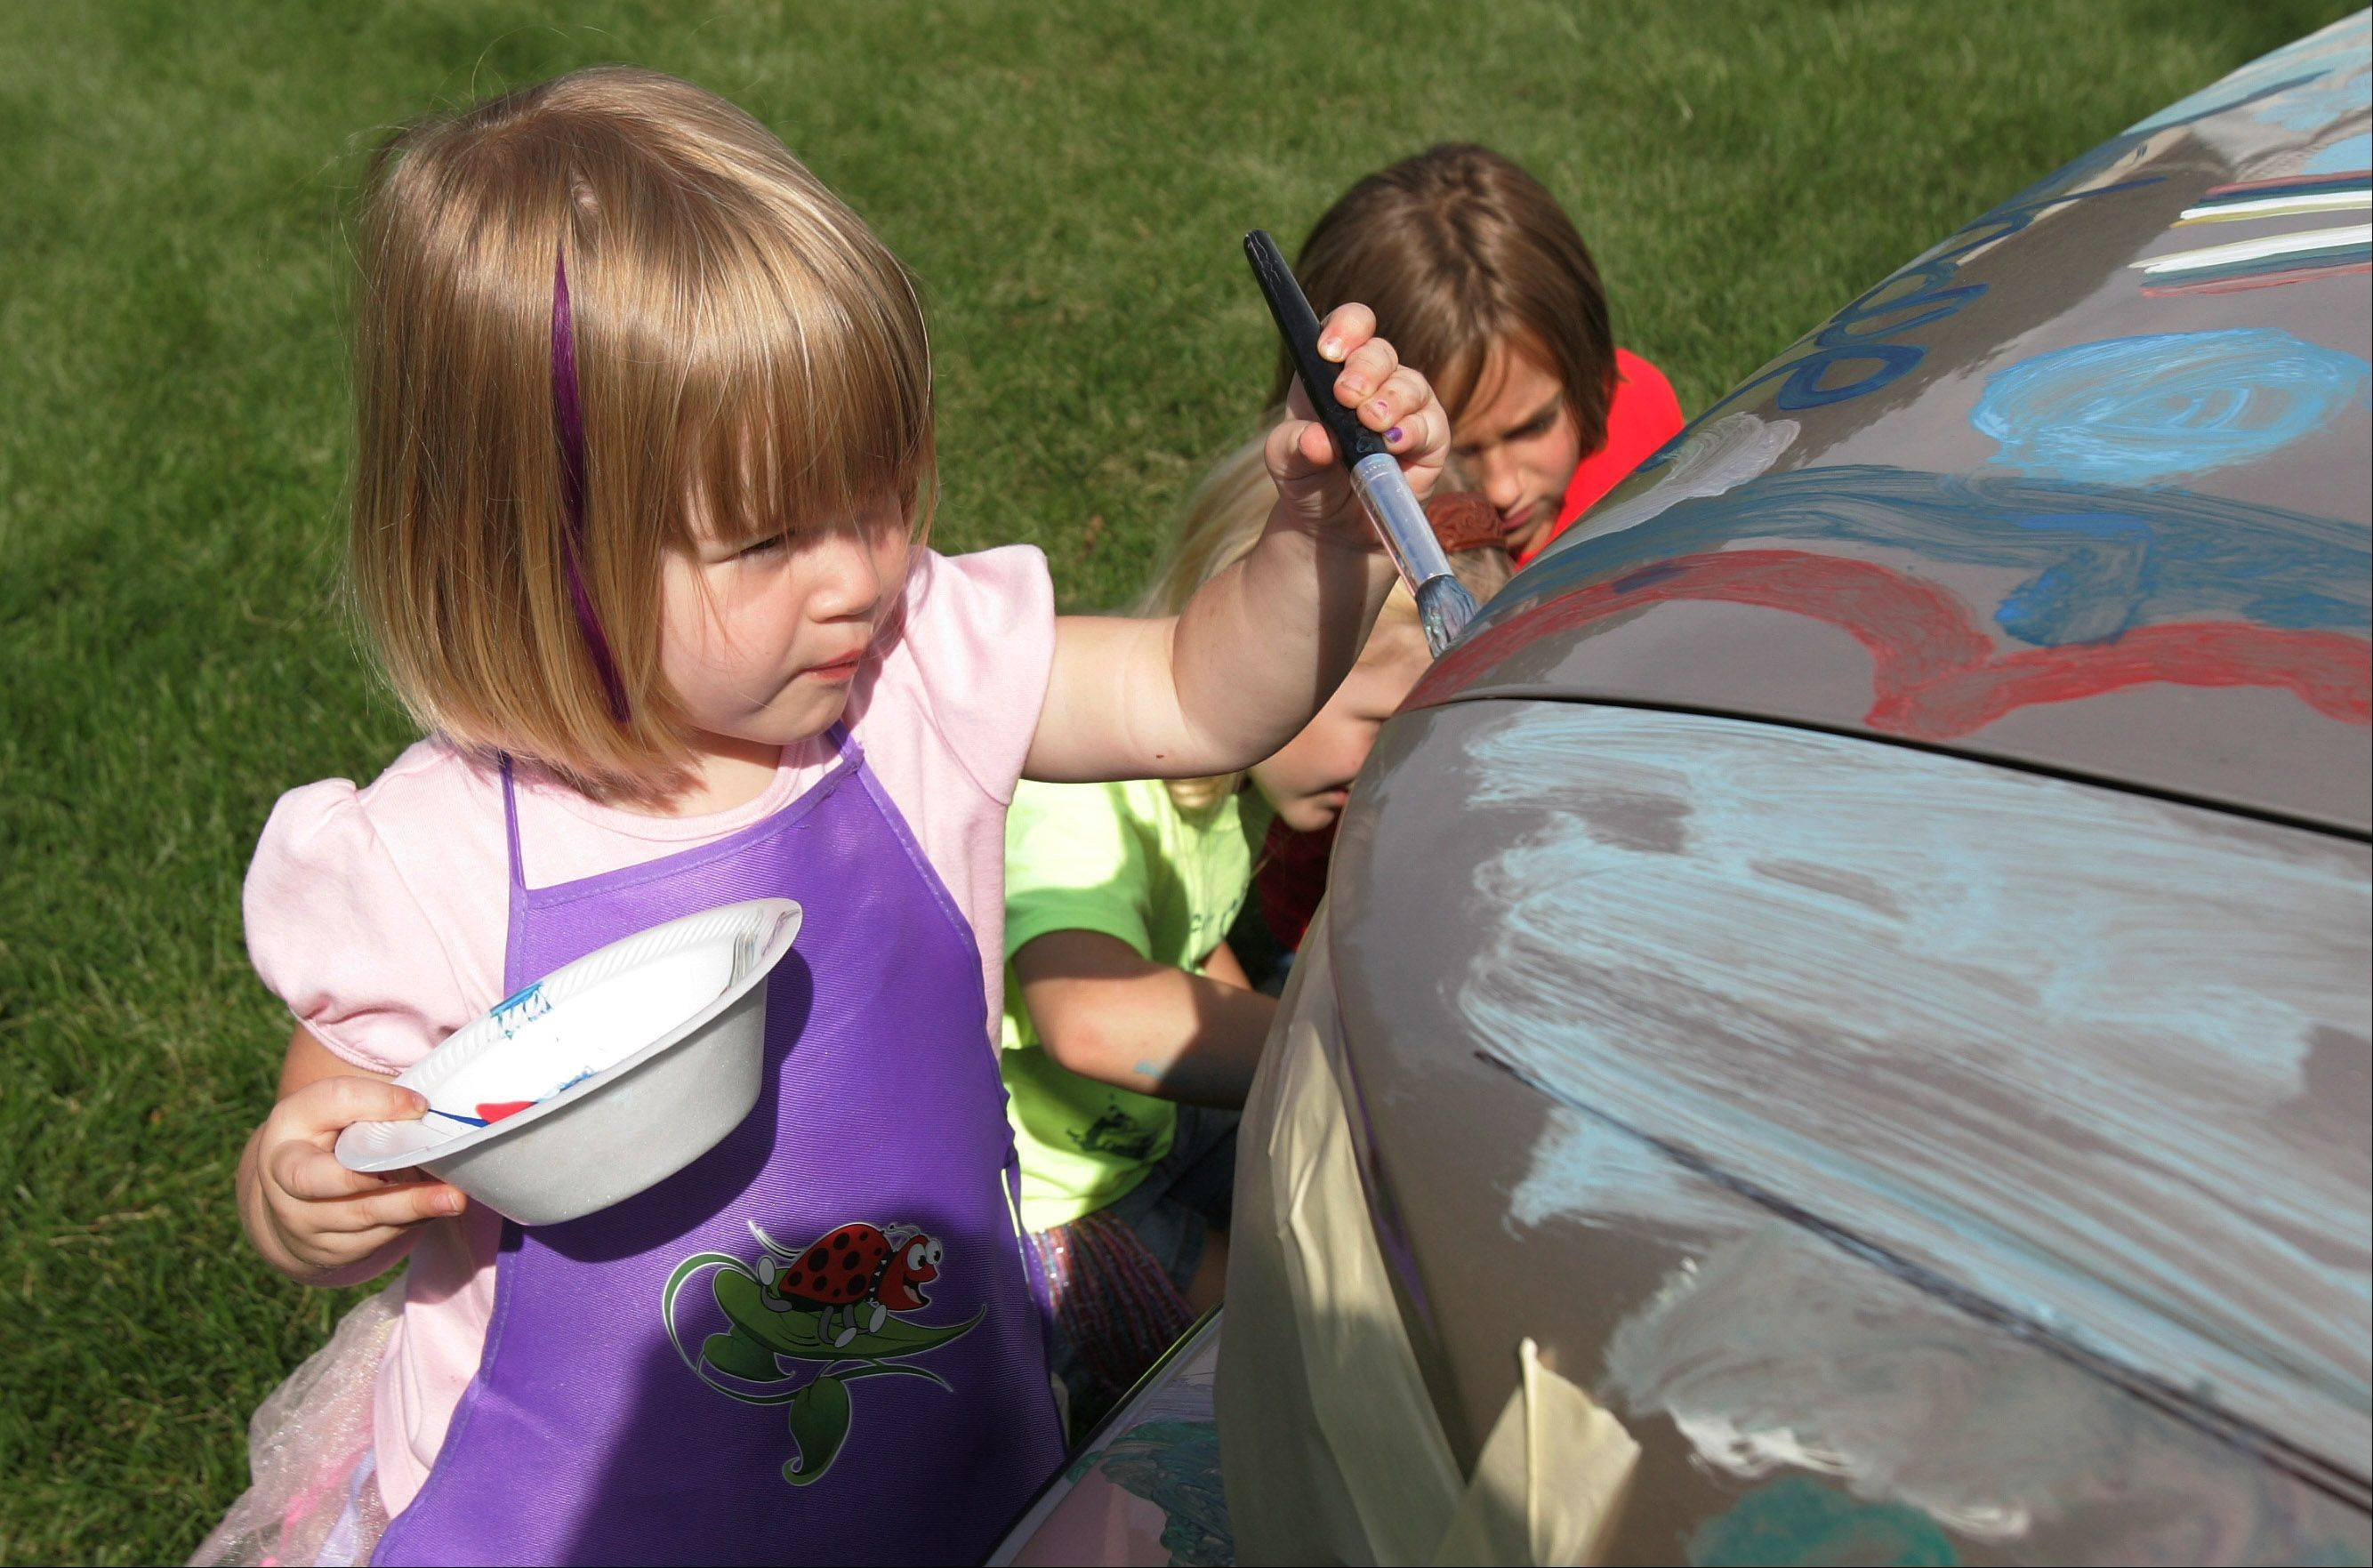 Naiomi Herrman, 3, of Lake Zurich paints on a car during the 5th Annual Taste of the Towns Sunday at Paulus Park in Lake Zurich.